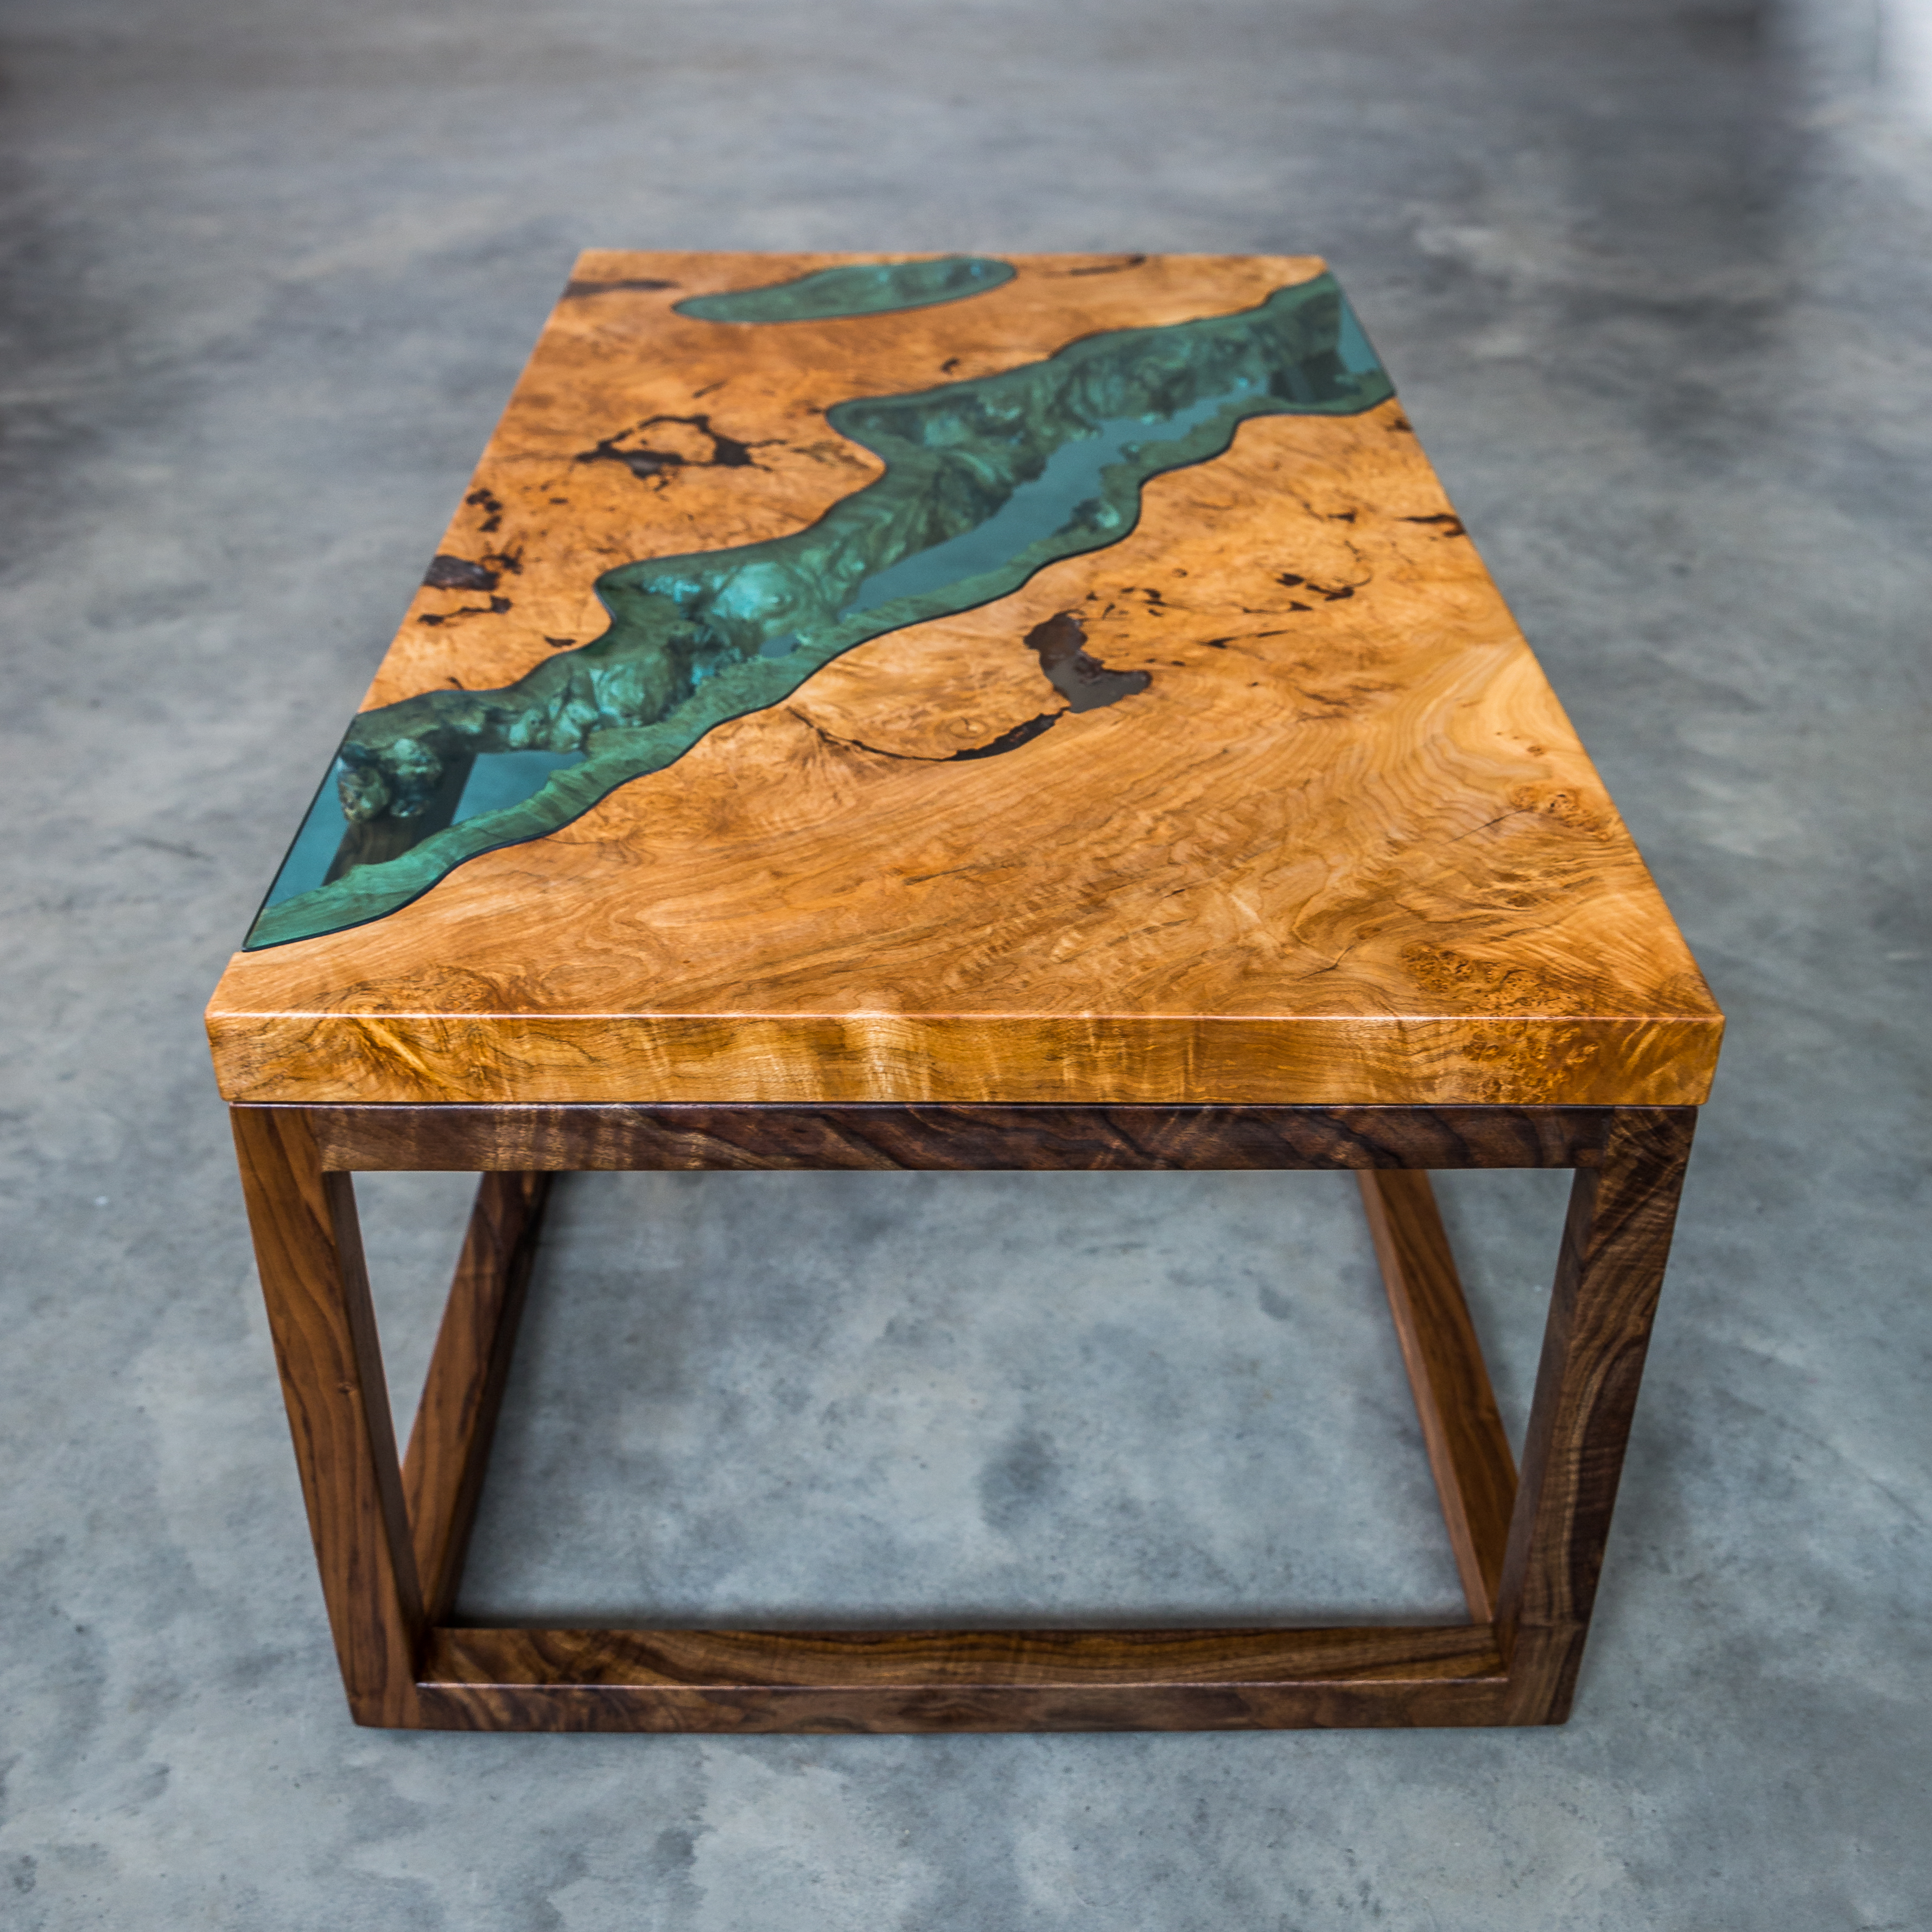 River Coffee Table 1.jpg